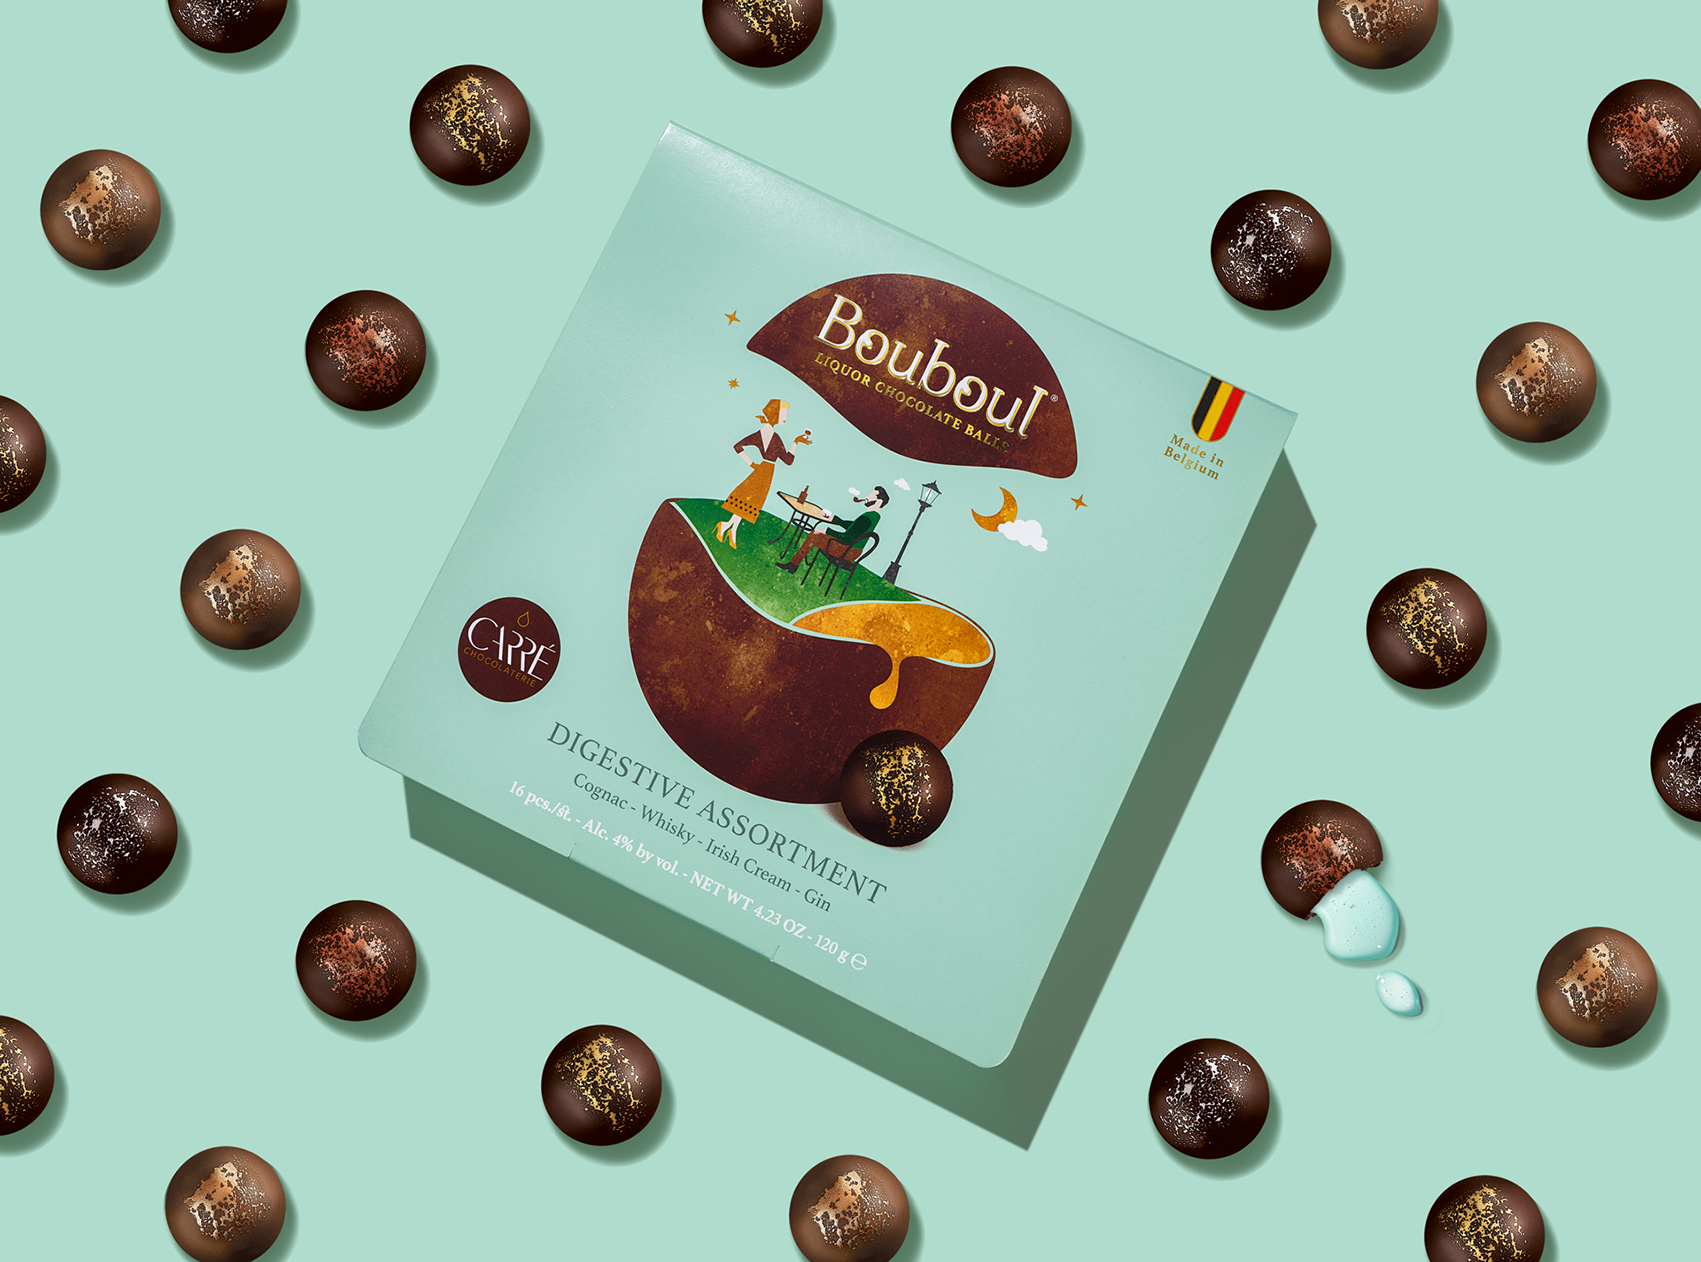 Quatre Mains Creates a Bouboul Packaging Design for Liqueur Chocolates